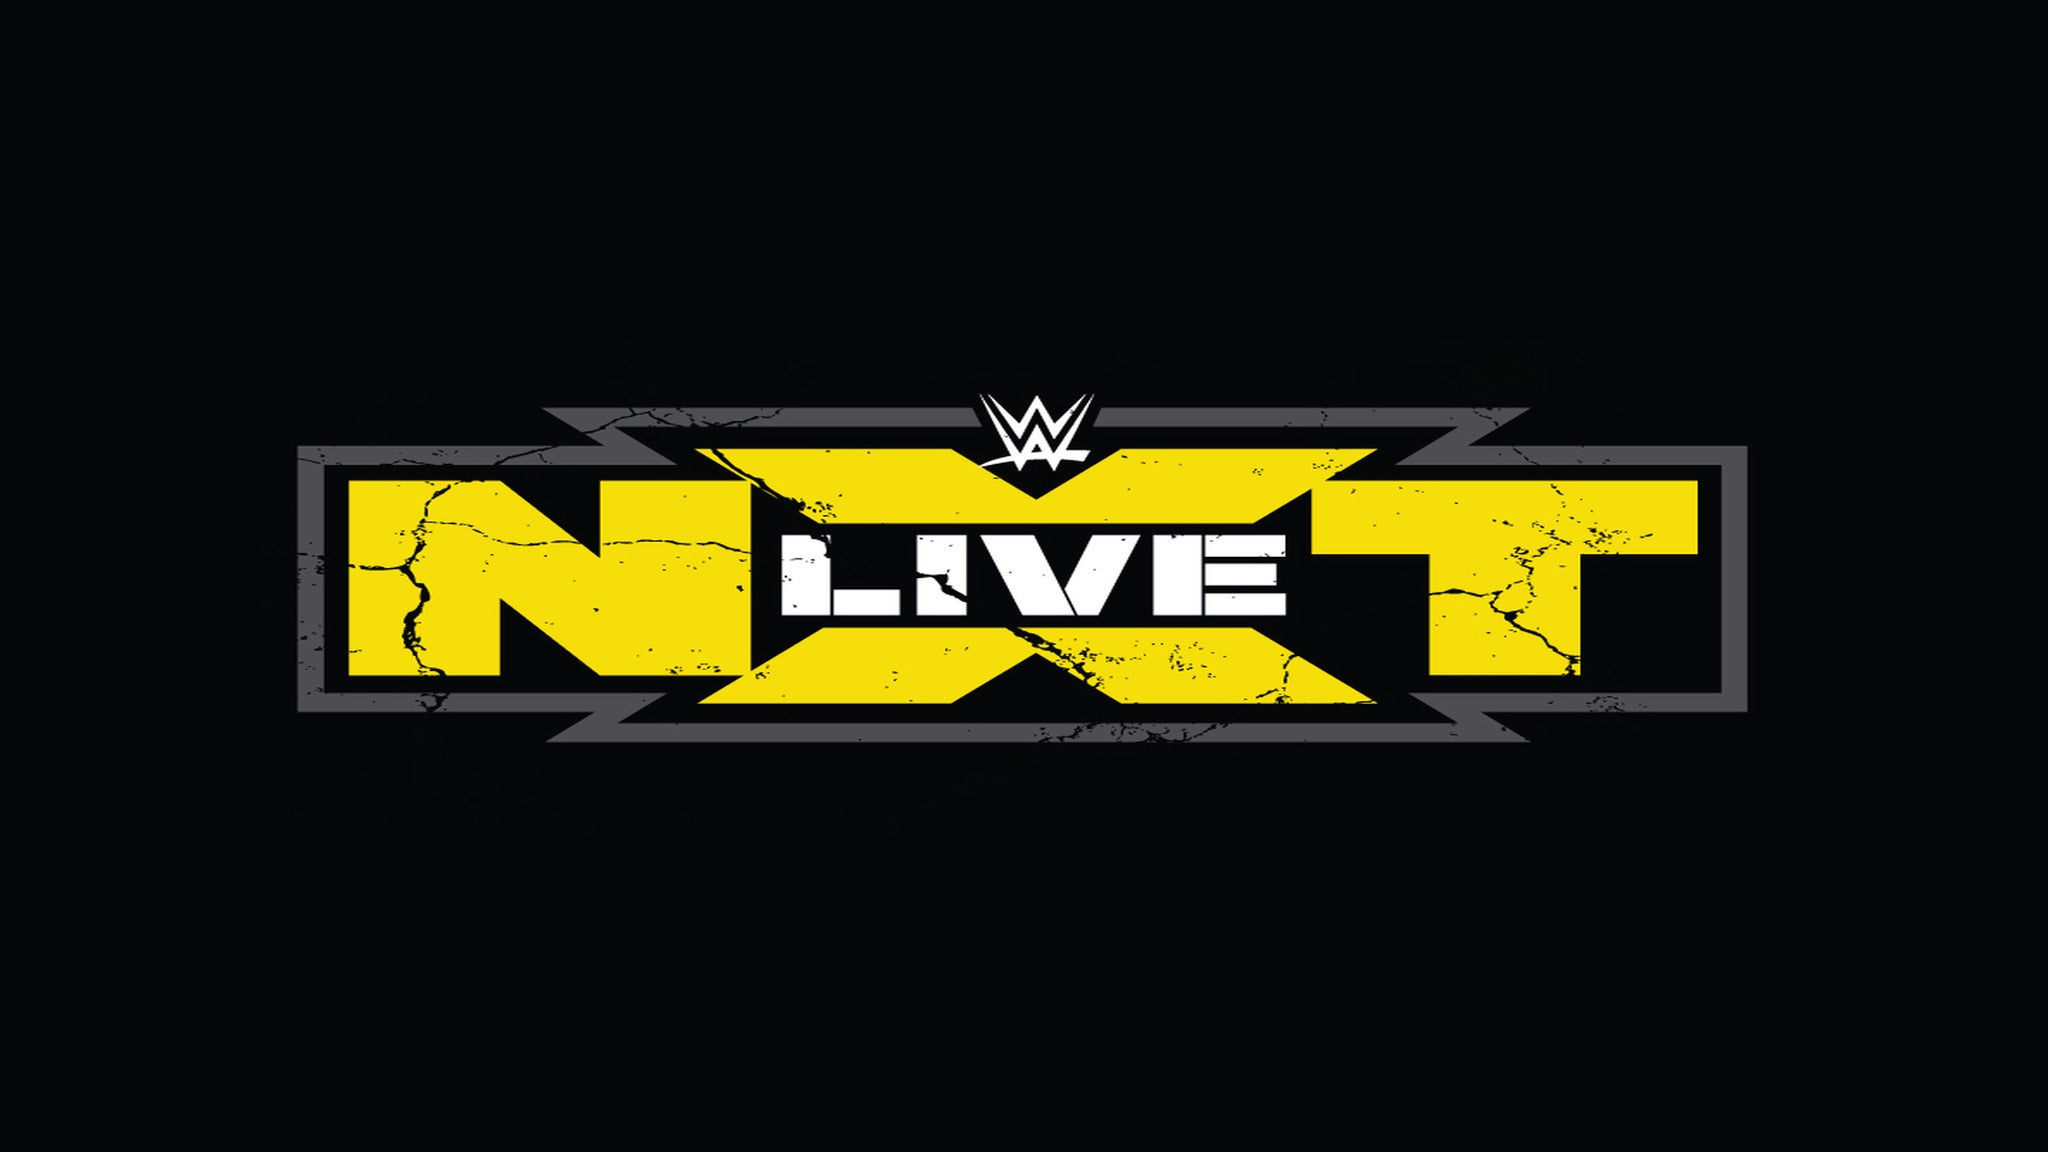 WWE presents: NXT Live! at Comerica Theatre